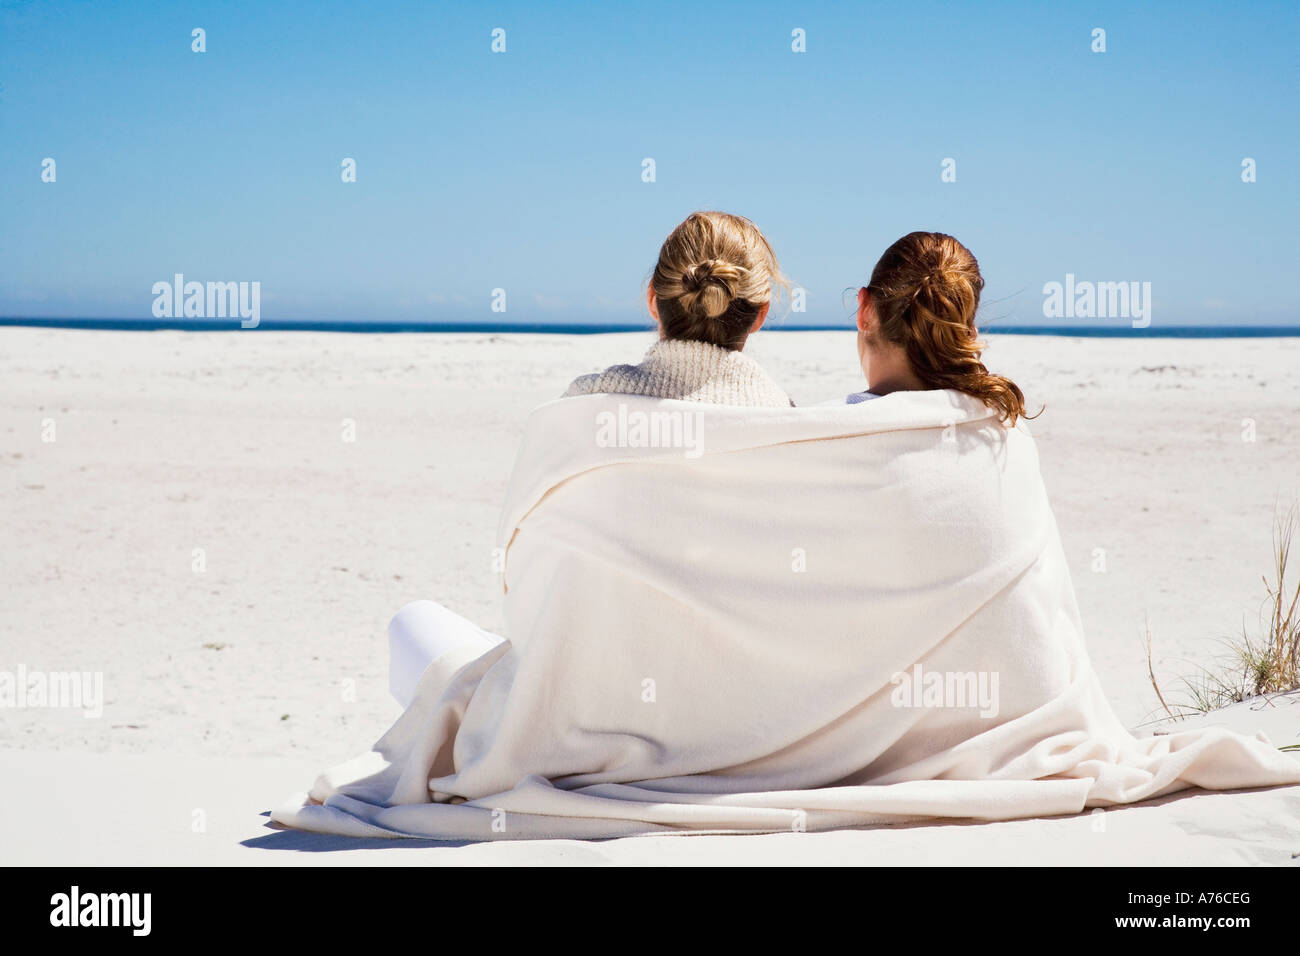 Mother and daughter sitting on beach, rear view - Stock Image